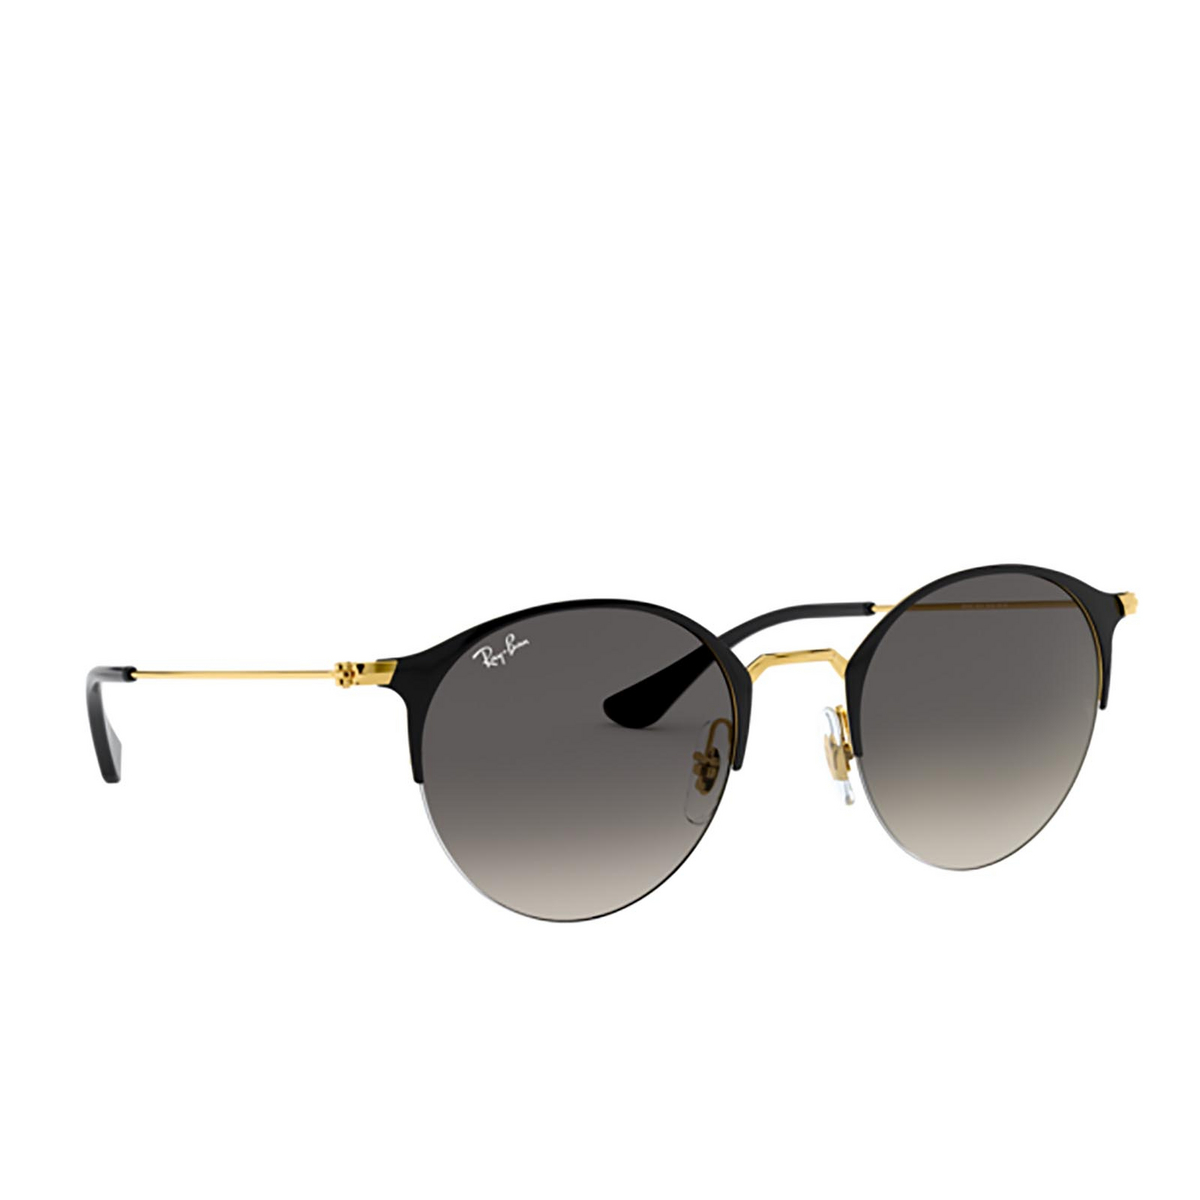 Ray-Ban® Round Sunglasses: RB3578 color Black On Arista 187/11 - 2/3.